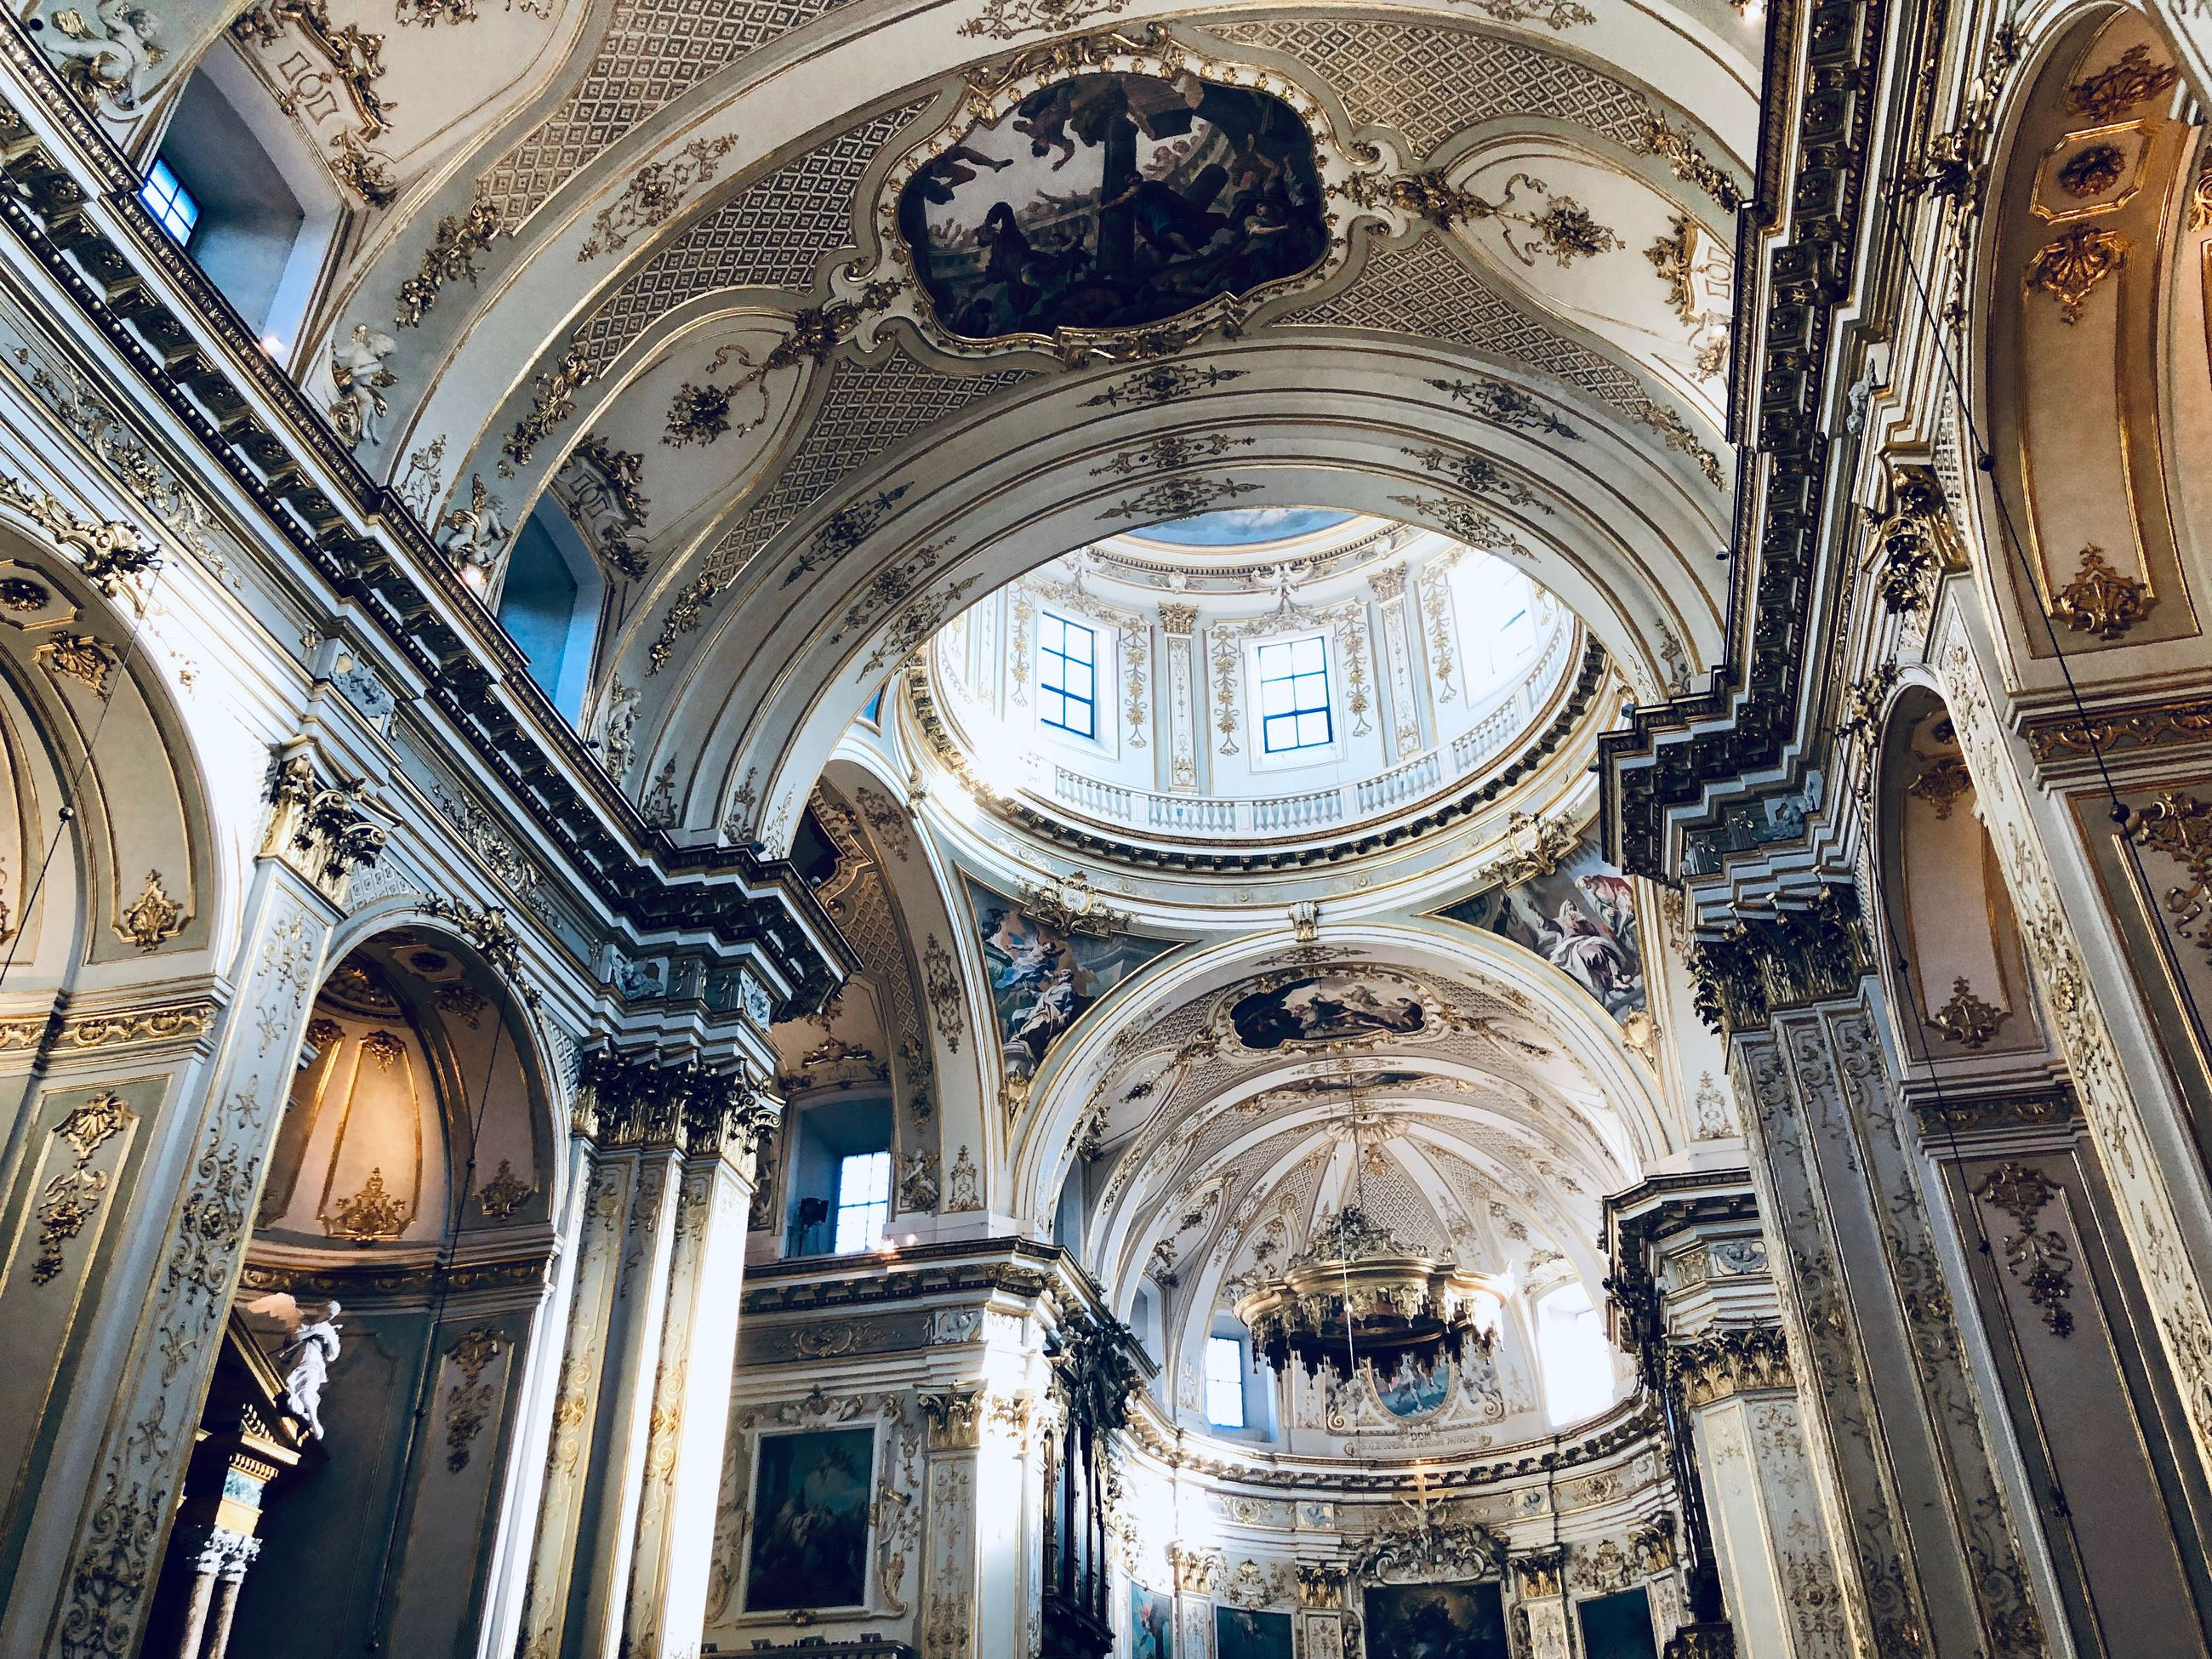 architecture, religion, built structure, place of worship, low angle view, spirituality, building, ceiling, indoors, belief, history, the past, architectural column, arch, day, no people, ornate, cupola, mural